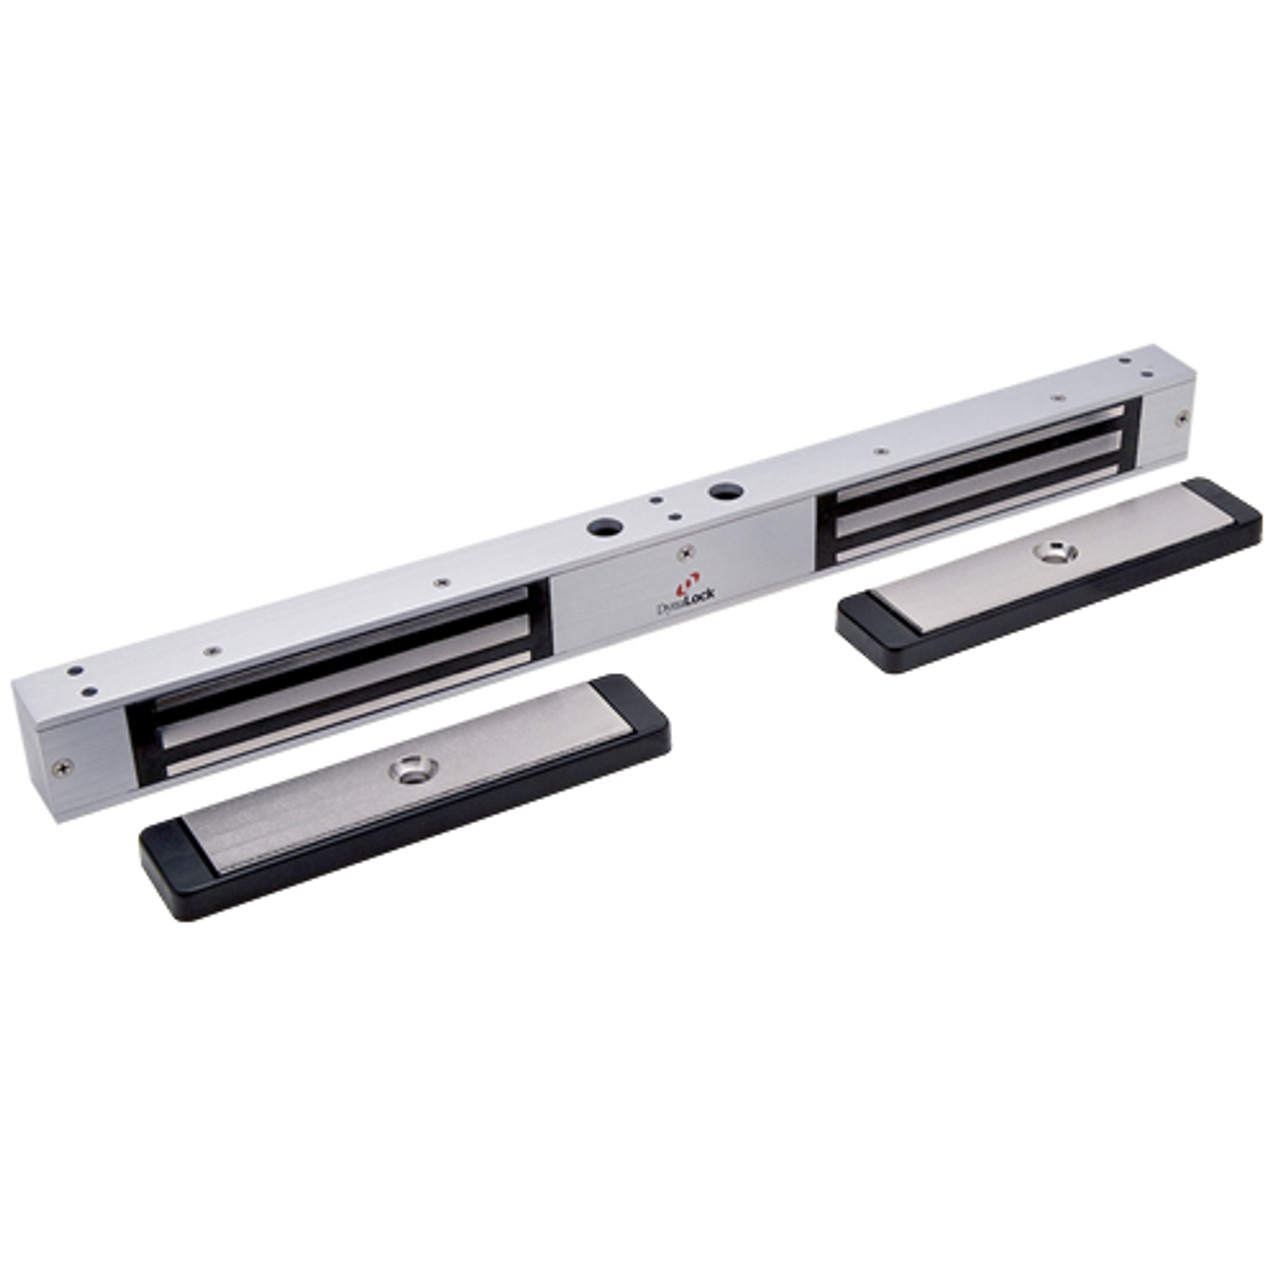 2522-US26-DSM2 DynaLock 2500 Series 650 LB Mini-Mag Double Electromagnetic Lock for Outswing Door with Door Status Switch in Bright Chrome